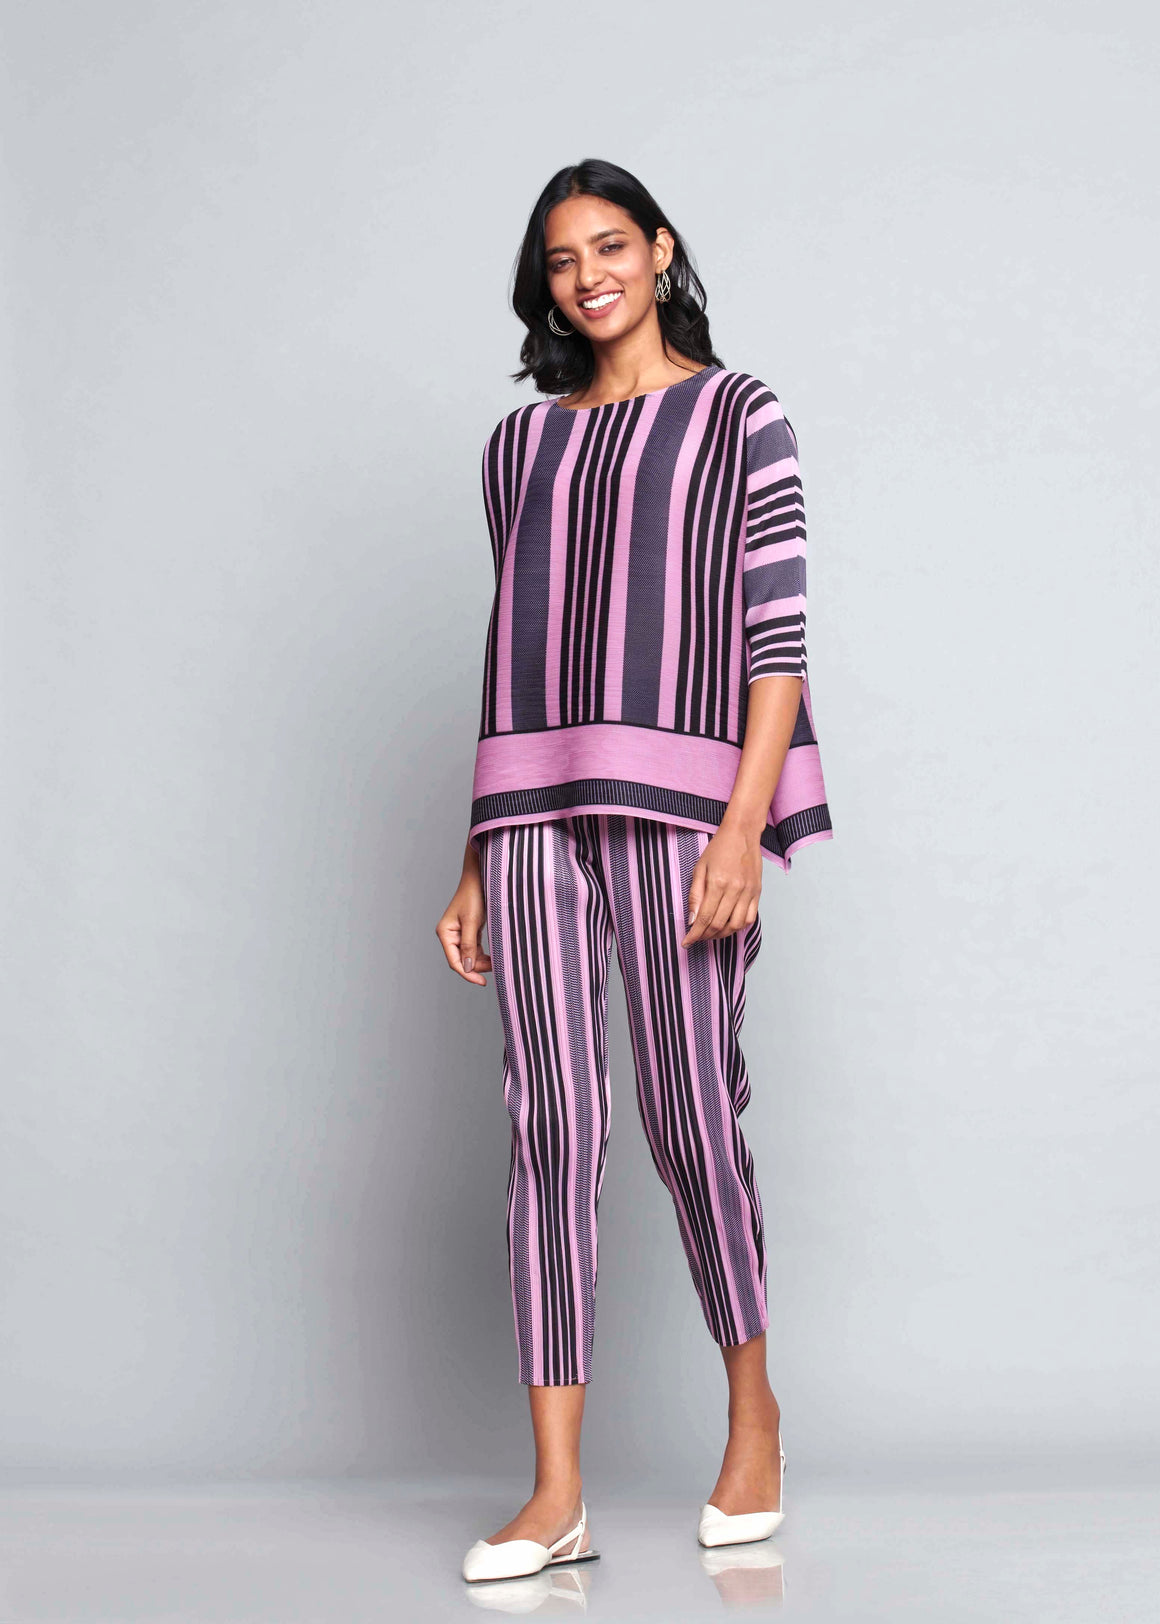 Co-ord Stripe Set - Mauve Pink & Black